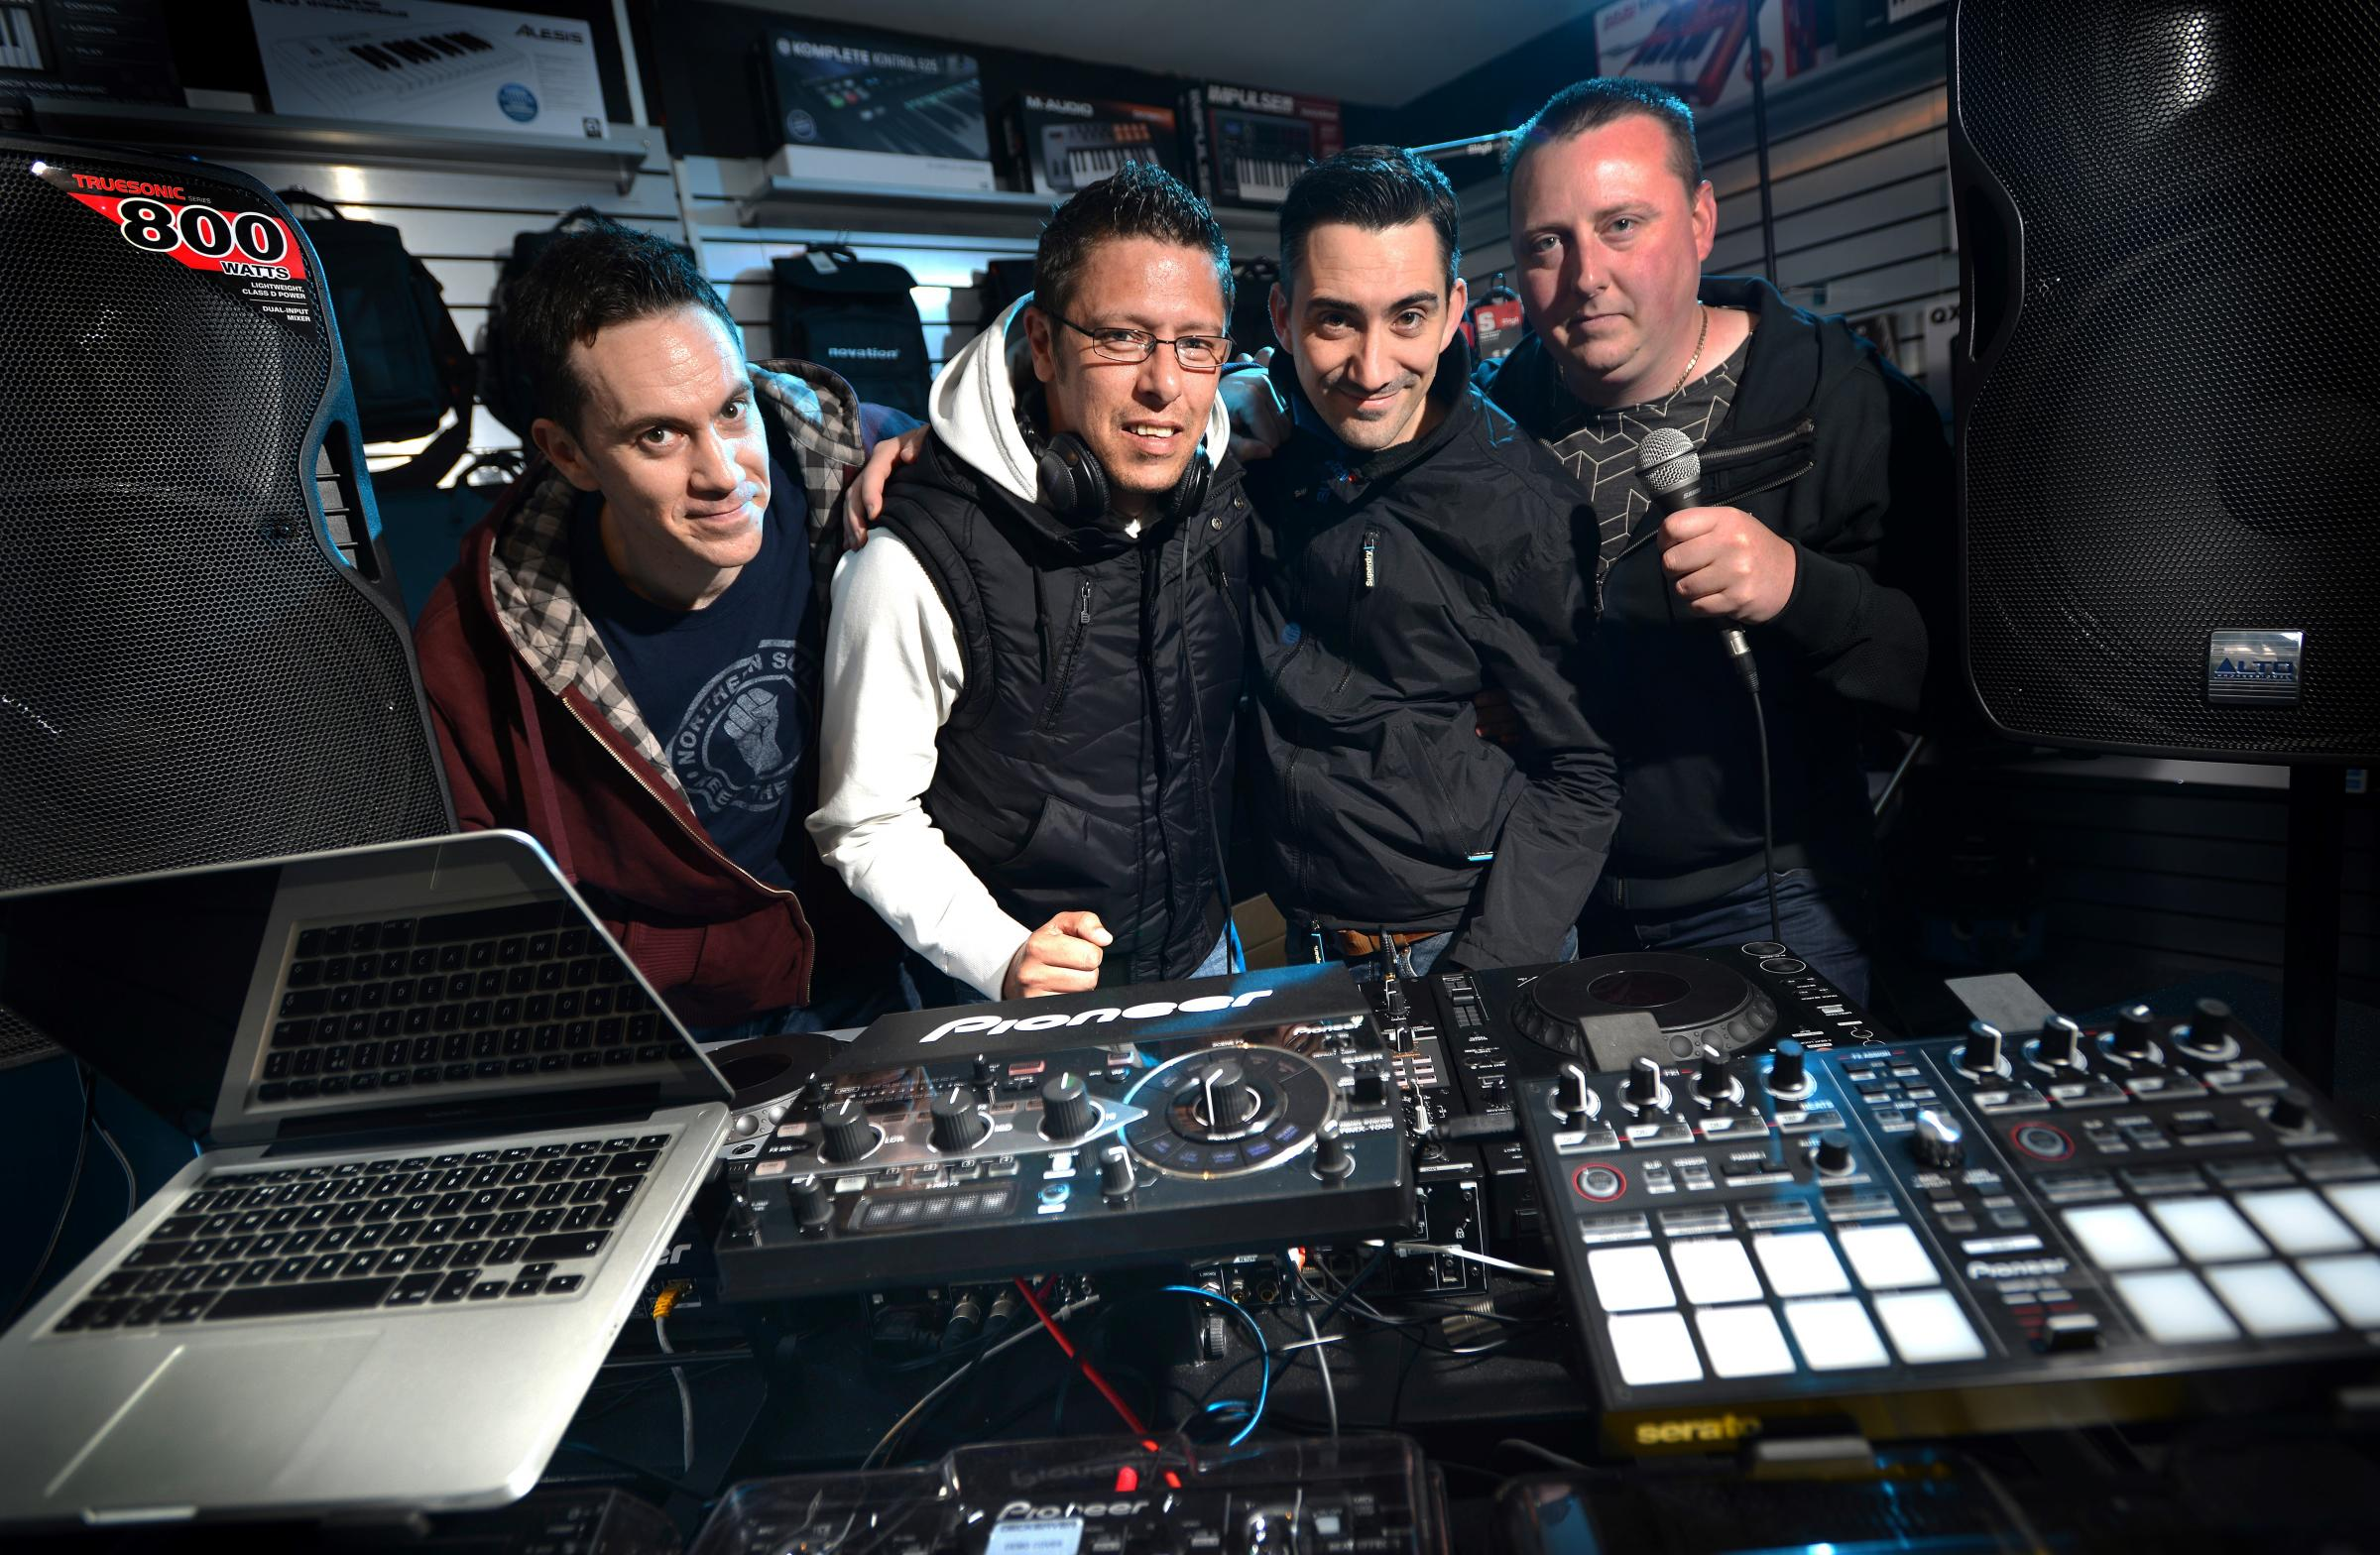 Bradford pirate radio station from the 1980s is back - but this time it's legal